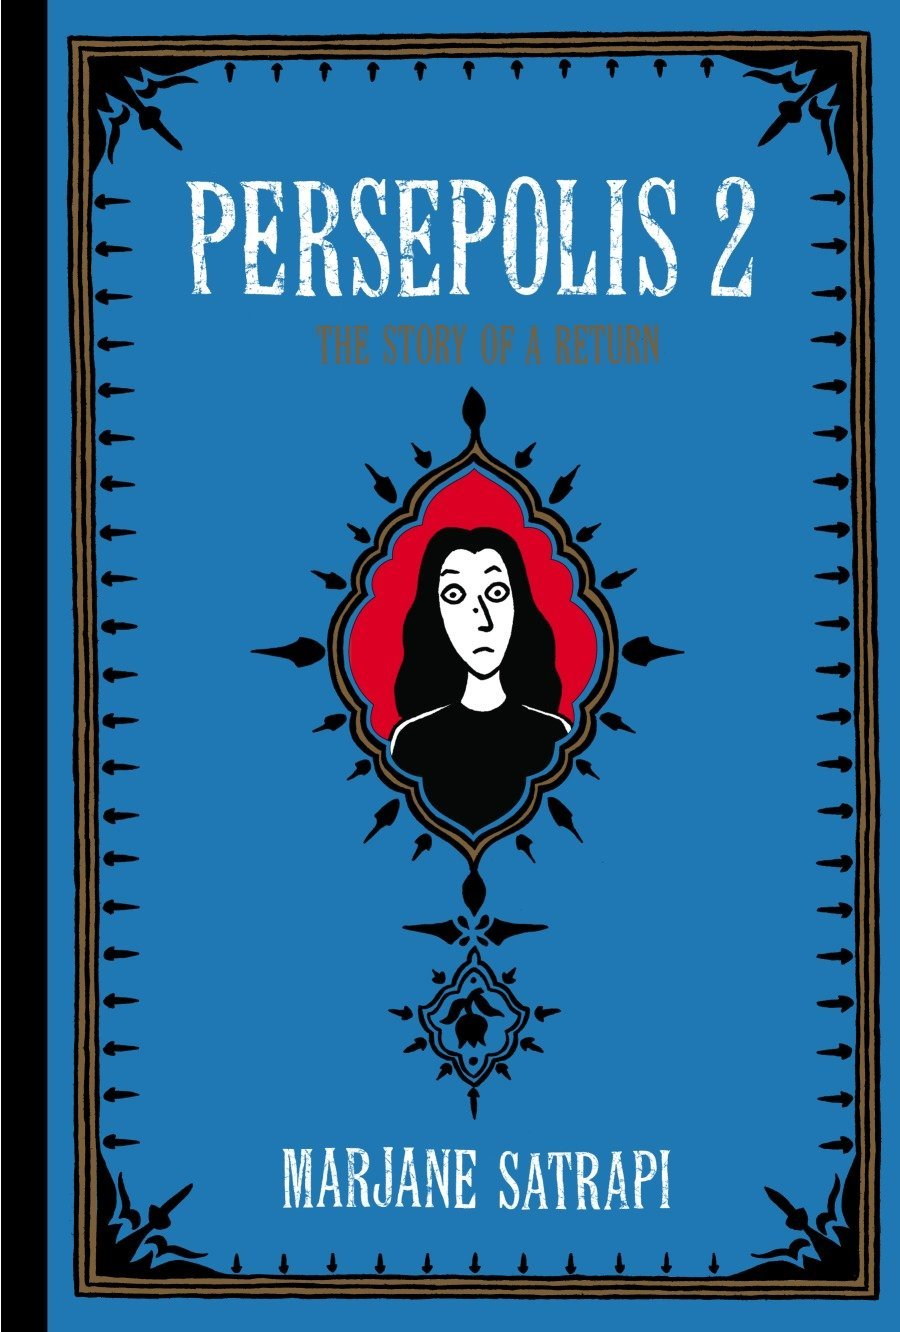 Image result for persepolis 2